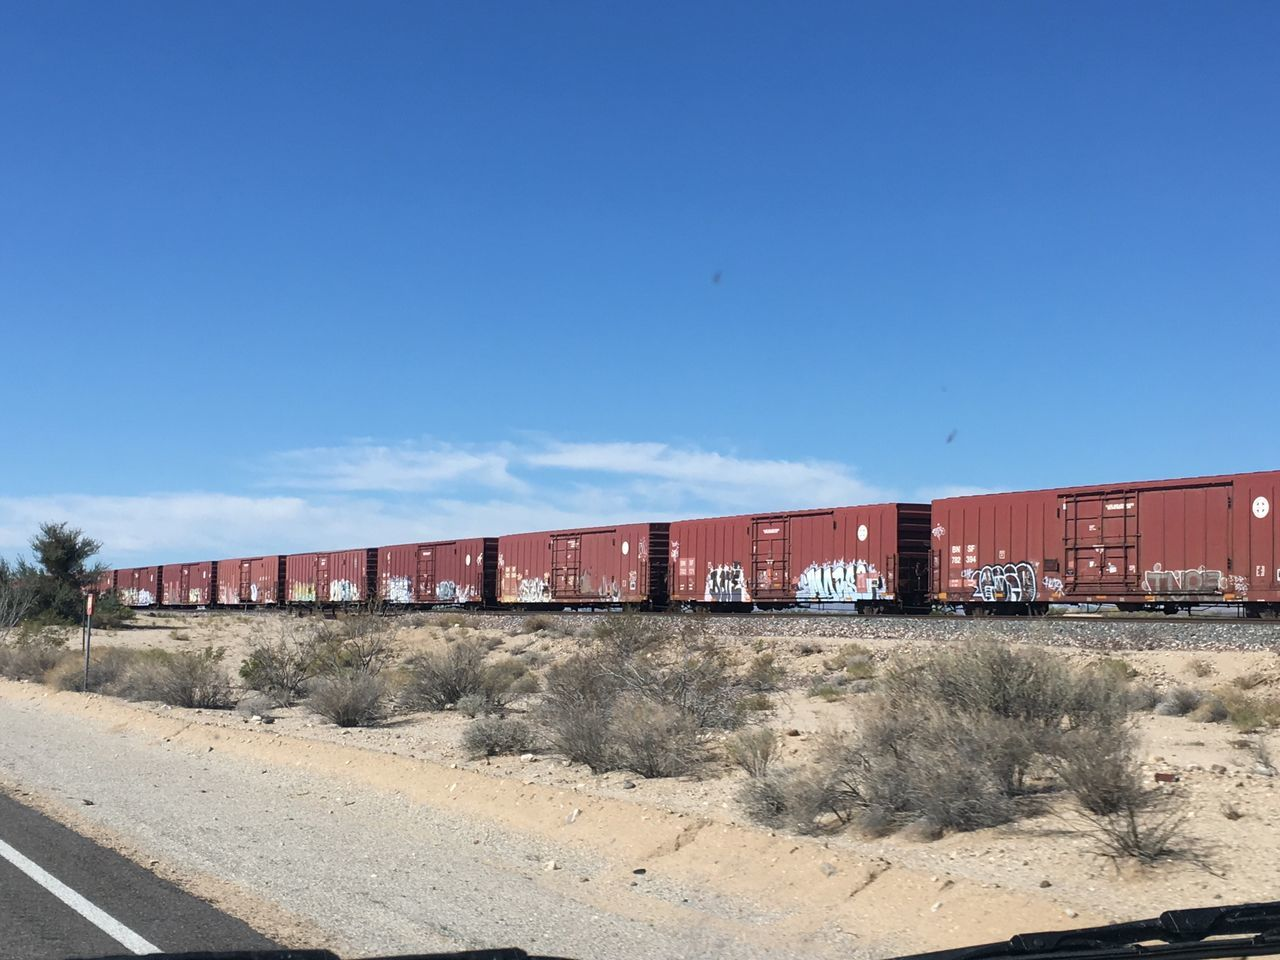 Scenics No People Sky Road Train Cars Rusty Things Trainphotography Drivingshots No Edit No Filter Landscape Backroads Driving Around Desert Sky